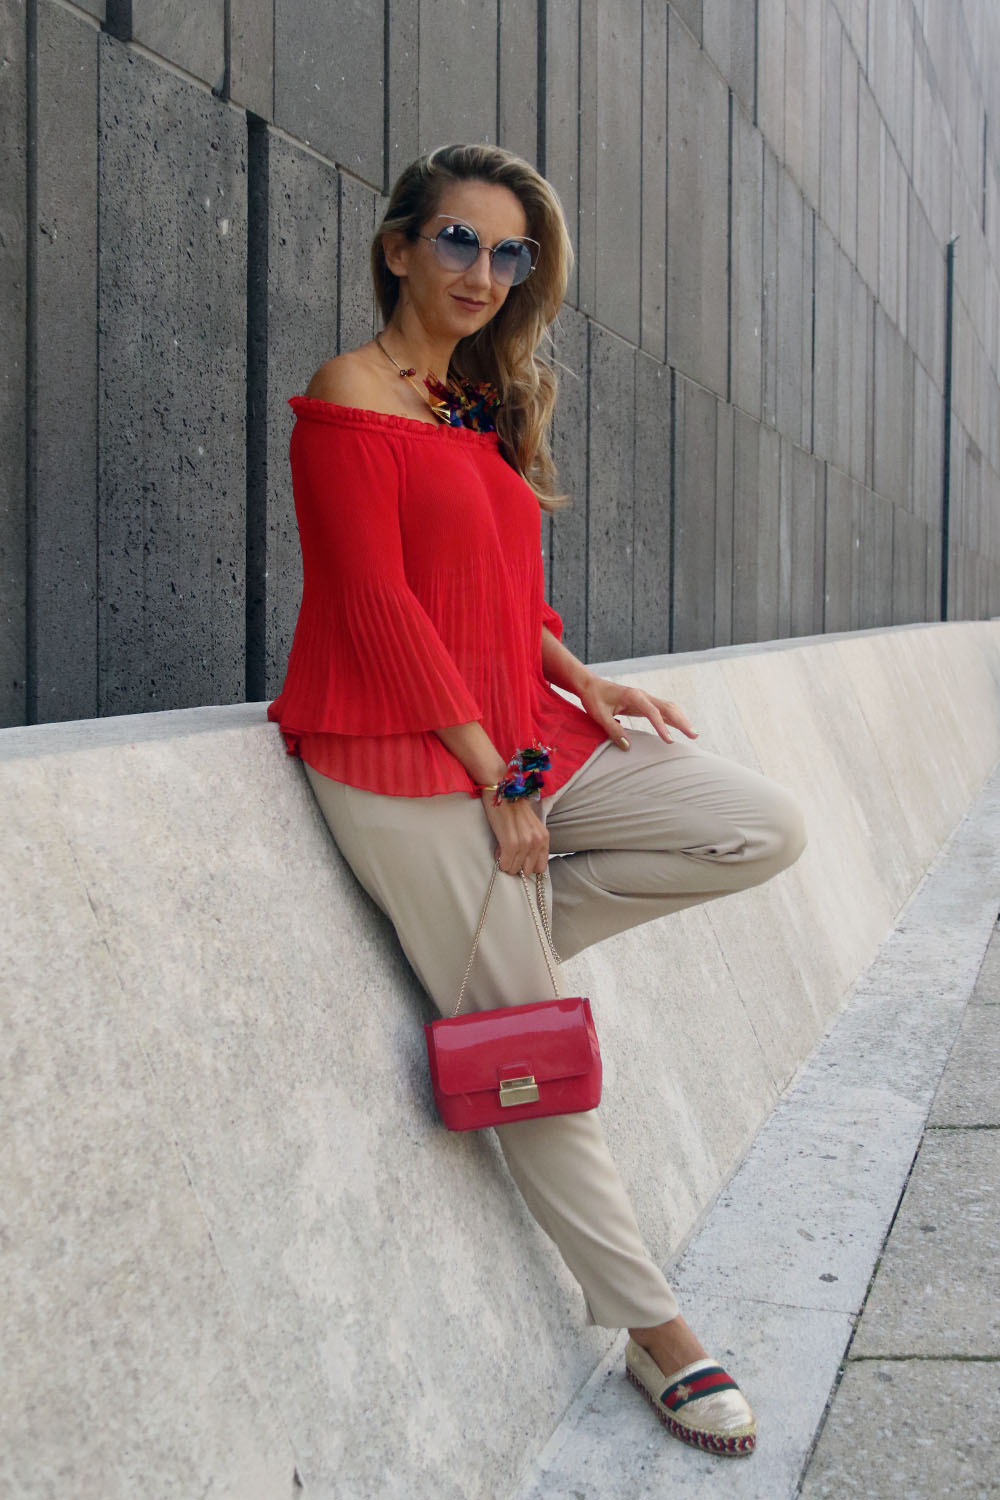 colourclub-modeblog-outfit-off-the-shoulder-top-gucci-shoes-furla-bag-thai-silk-juwelery-ornaments-lor13